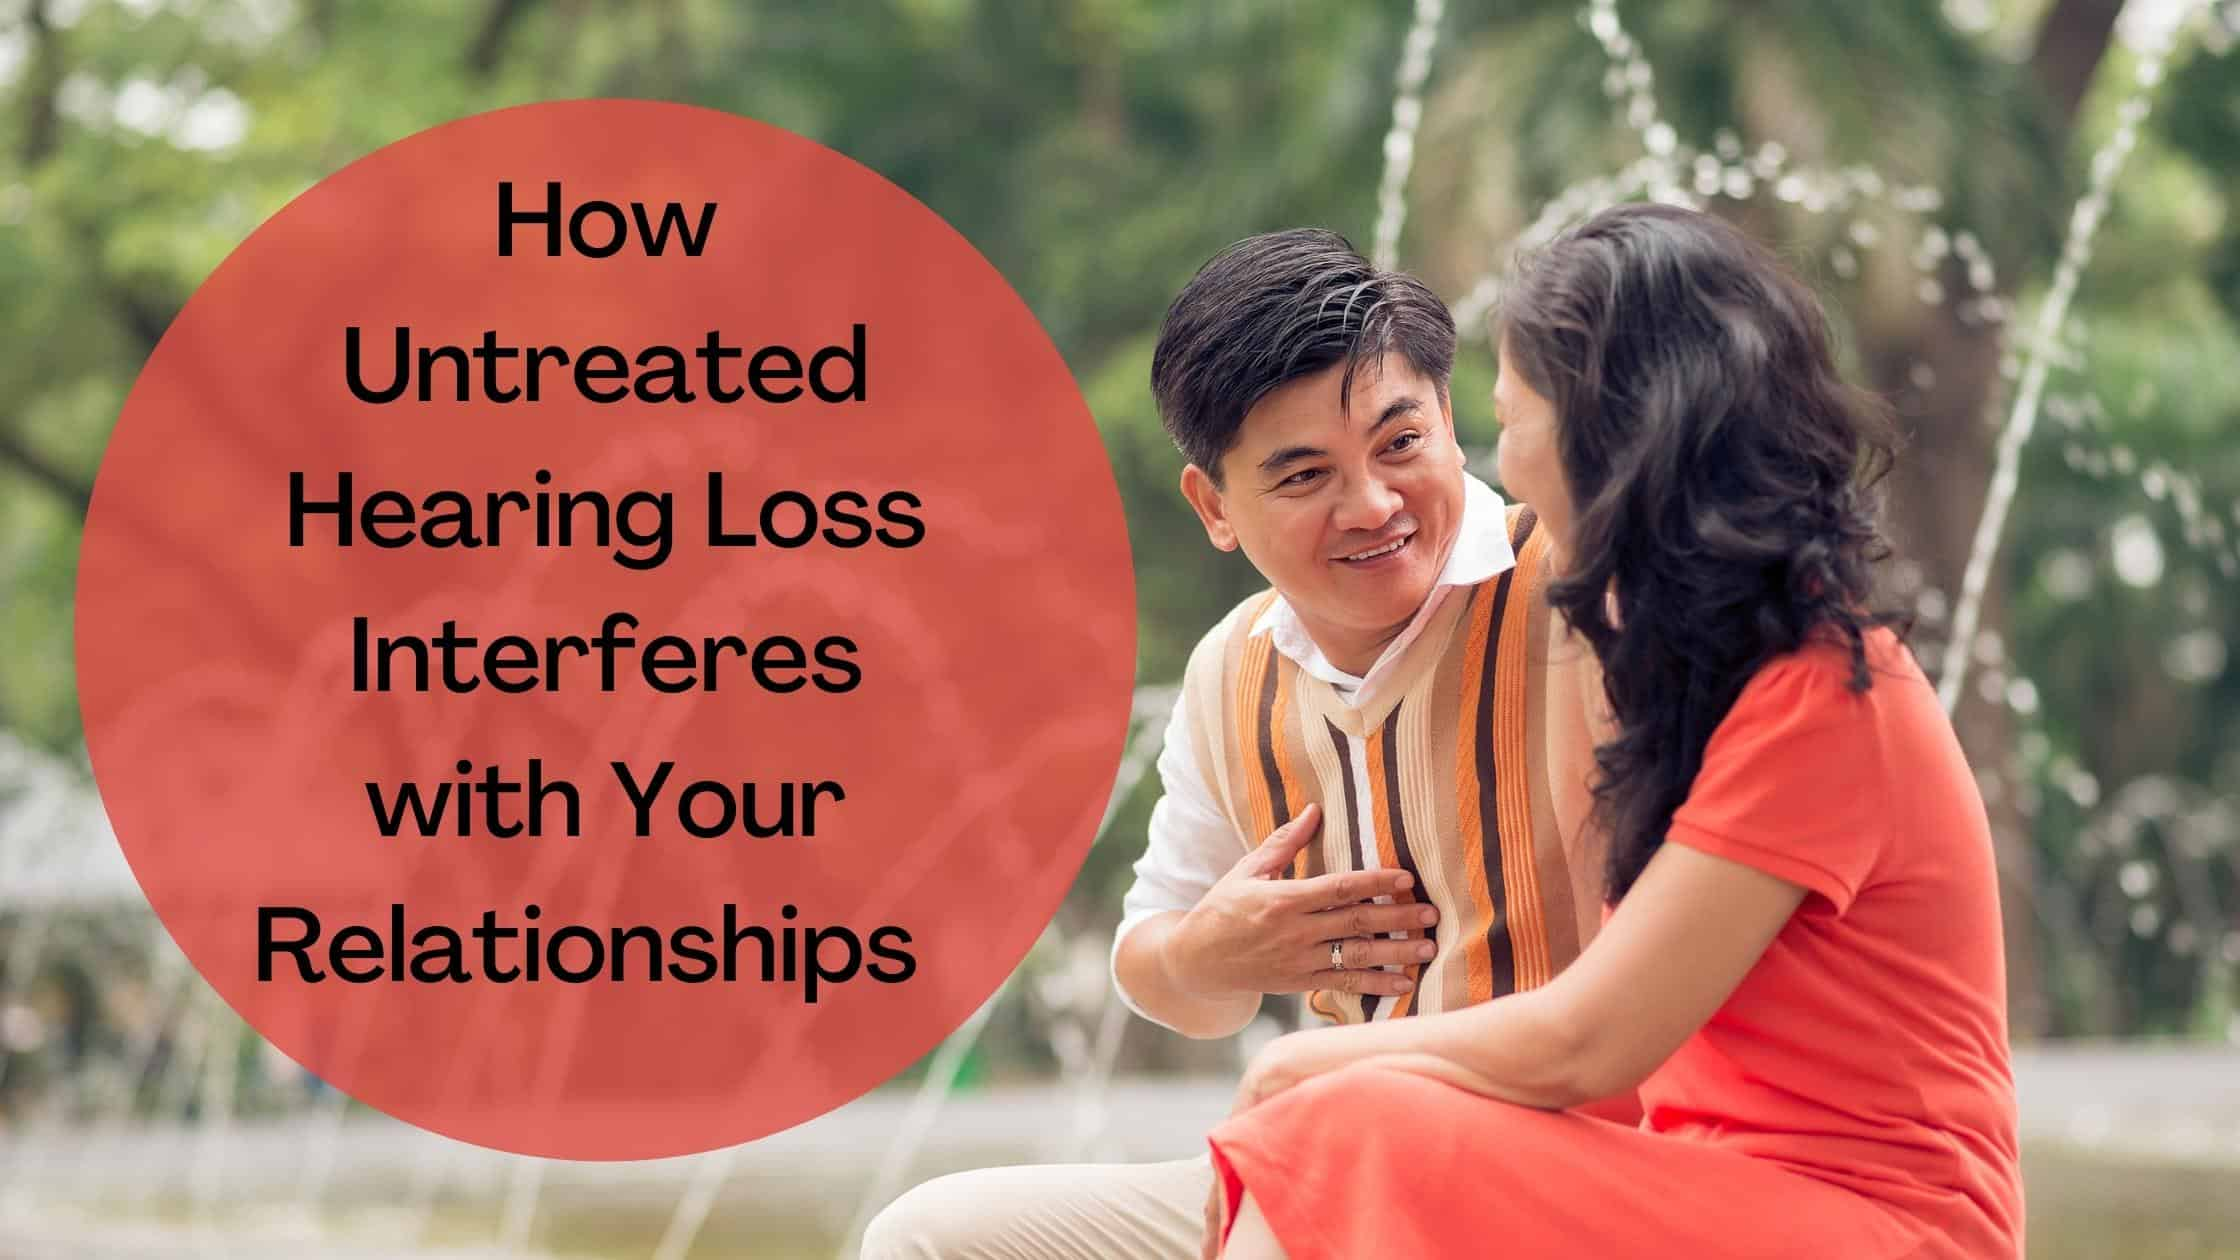 How Untreated Hearing Loss Interferes with Your Relationships